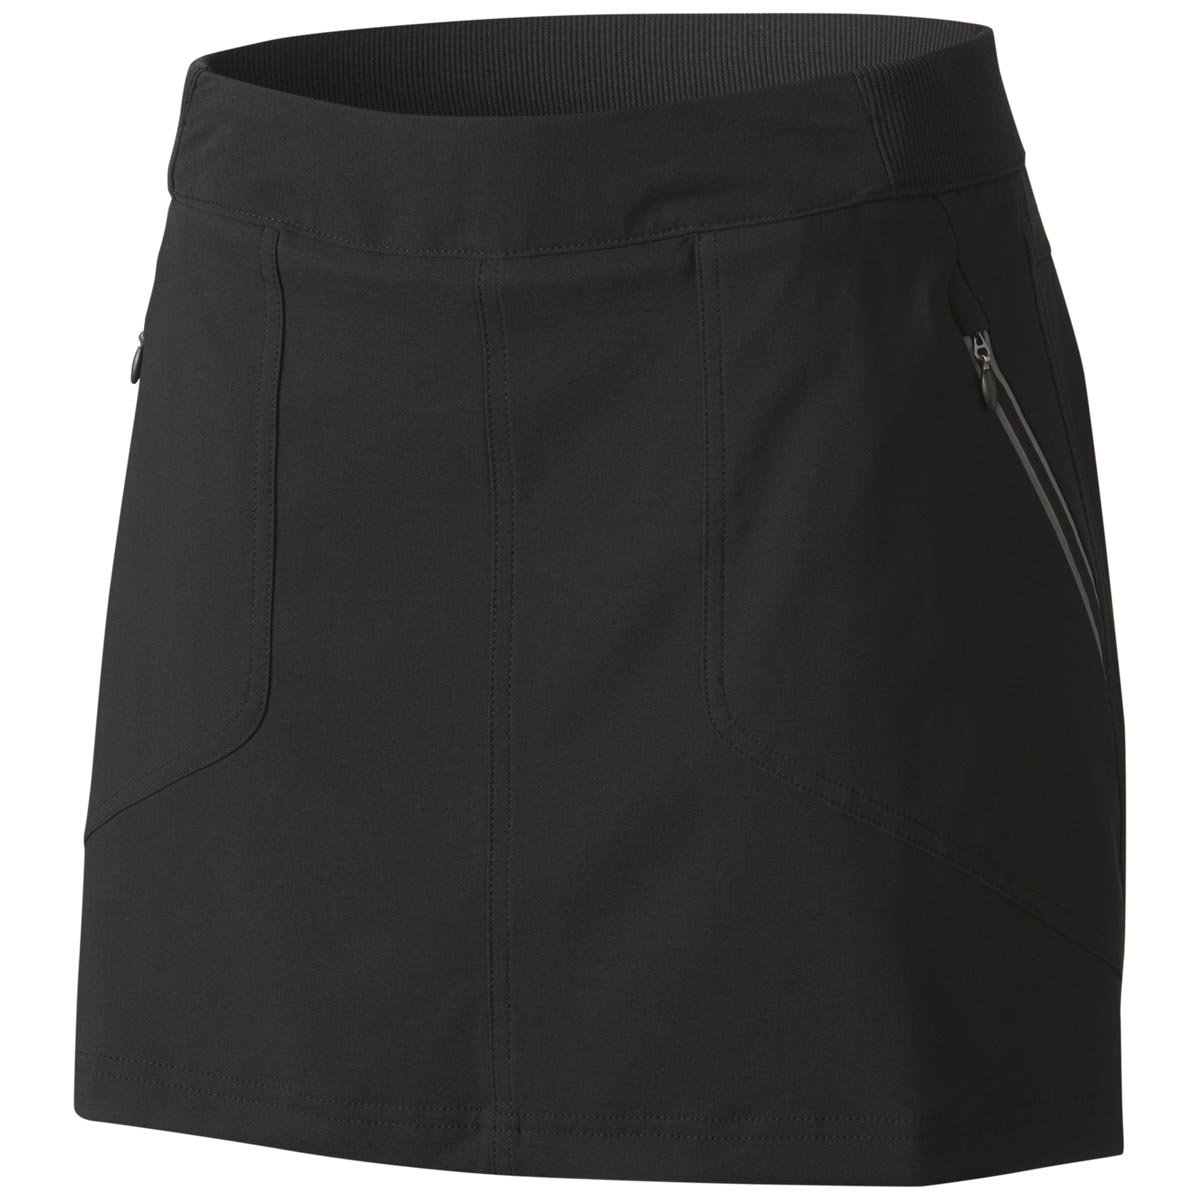 Columbia Women's Bryce Canyon Skort, Black, X-Small